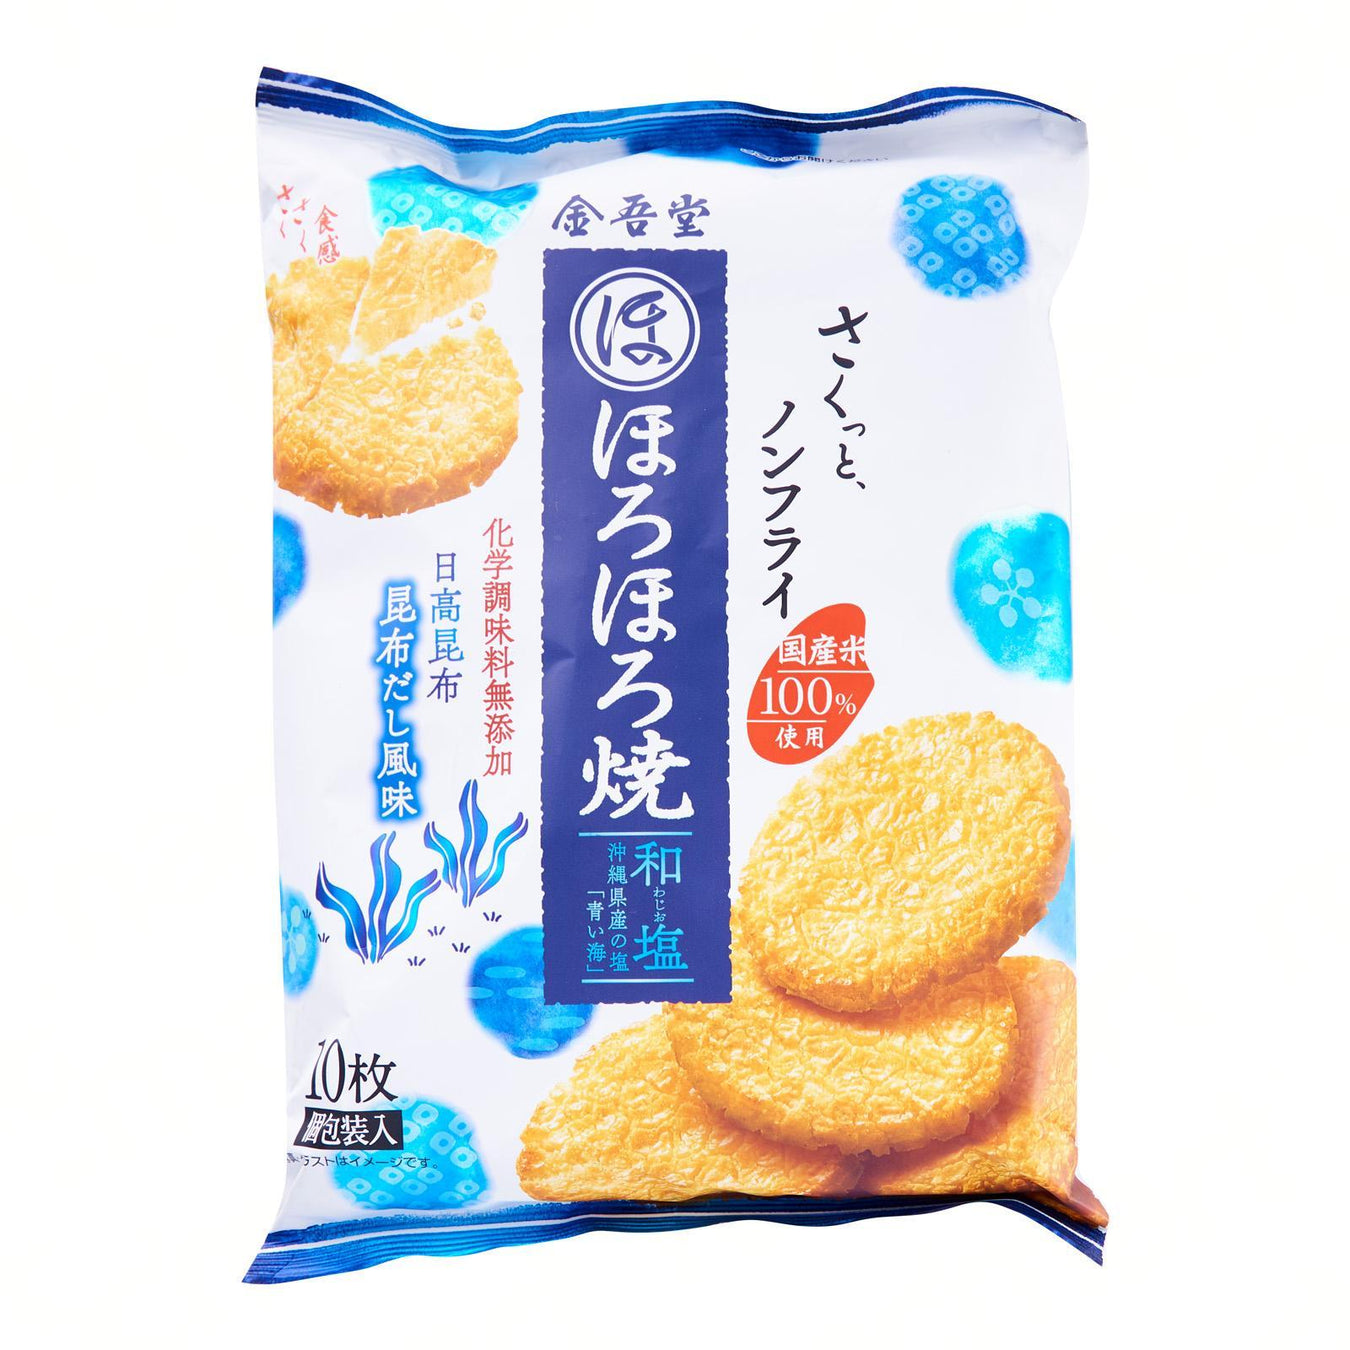 Japanese Snacks and Candies